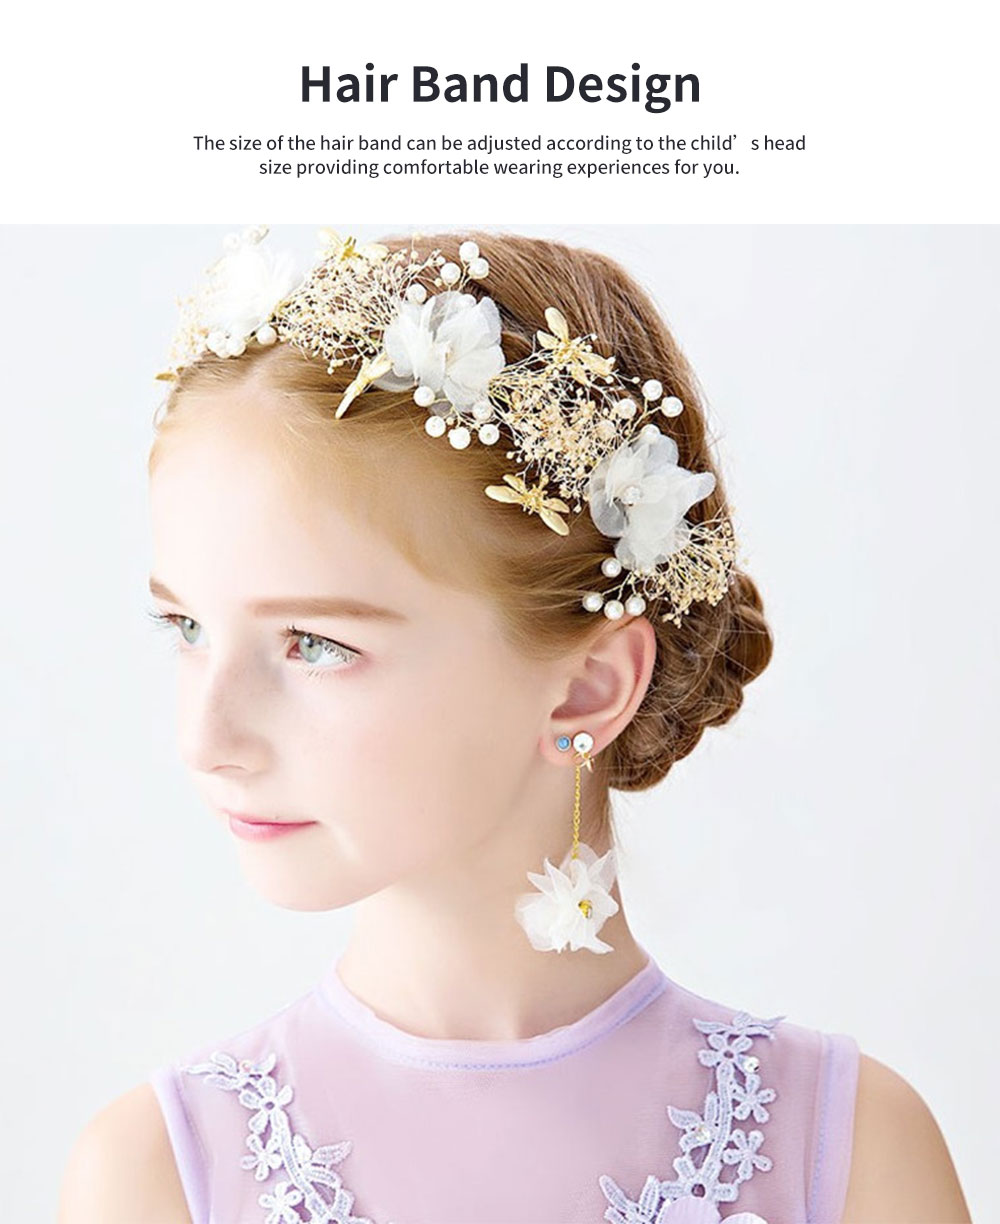 Fancy Flower Bees Model Artificial Pearl Decorative Hair Ornament Delicate Girl Crown Ear Clip Accessories Suit 3PCS 5